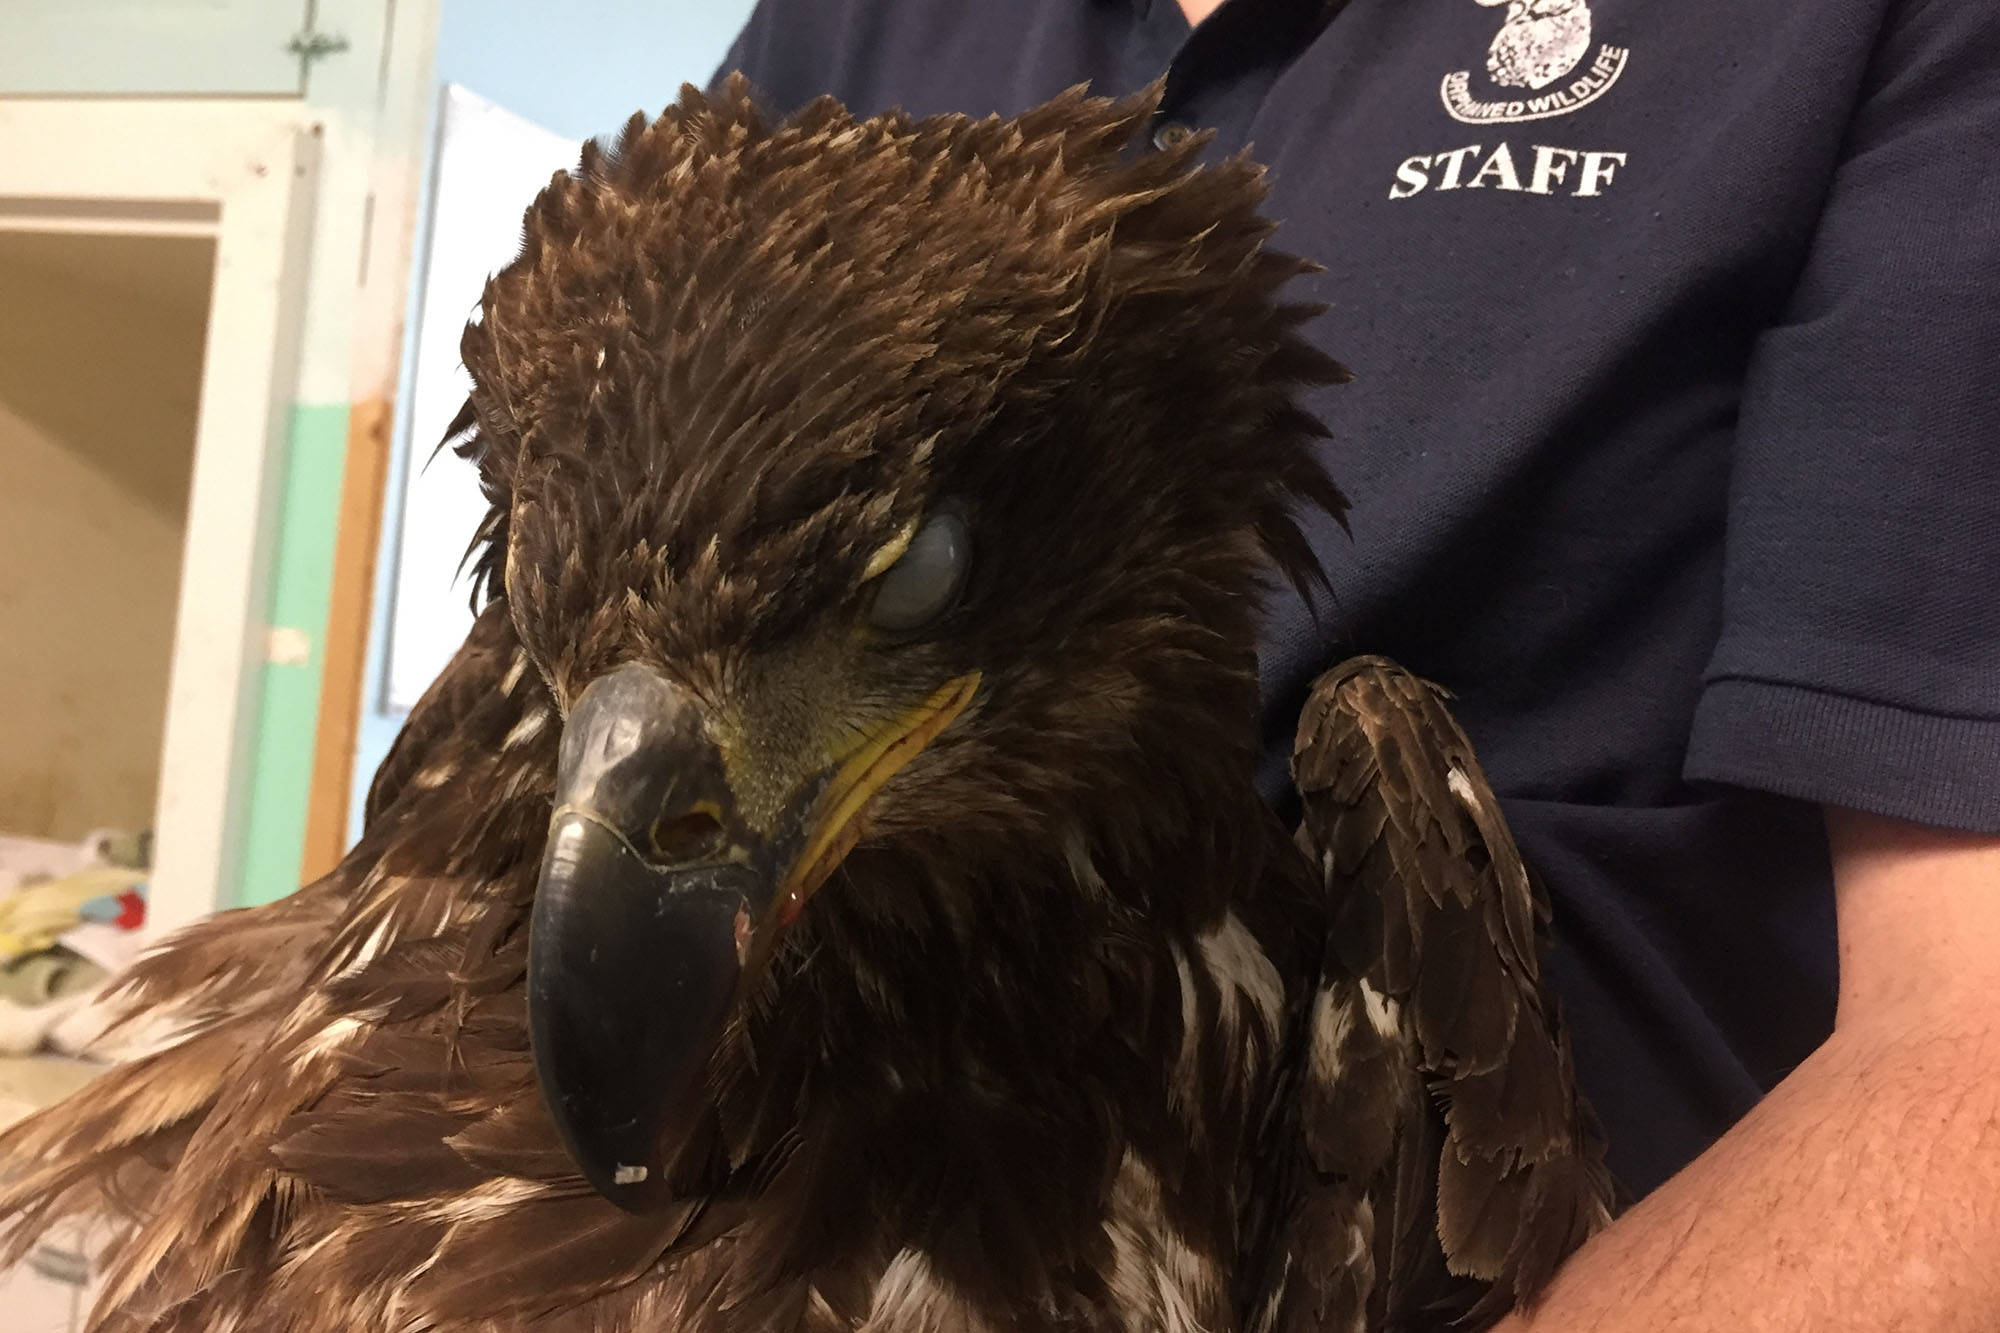 This eagle was found on the side of Highway 1 by an Abbotsford homeless man, and brought to the OWL Rehabilitation Society in Delta. Submitted photo